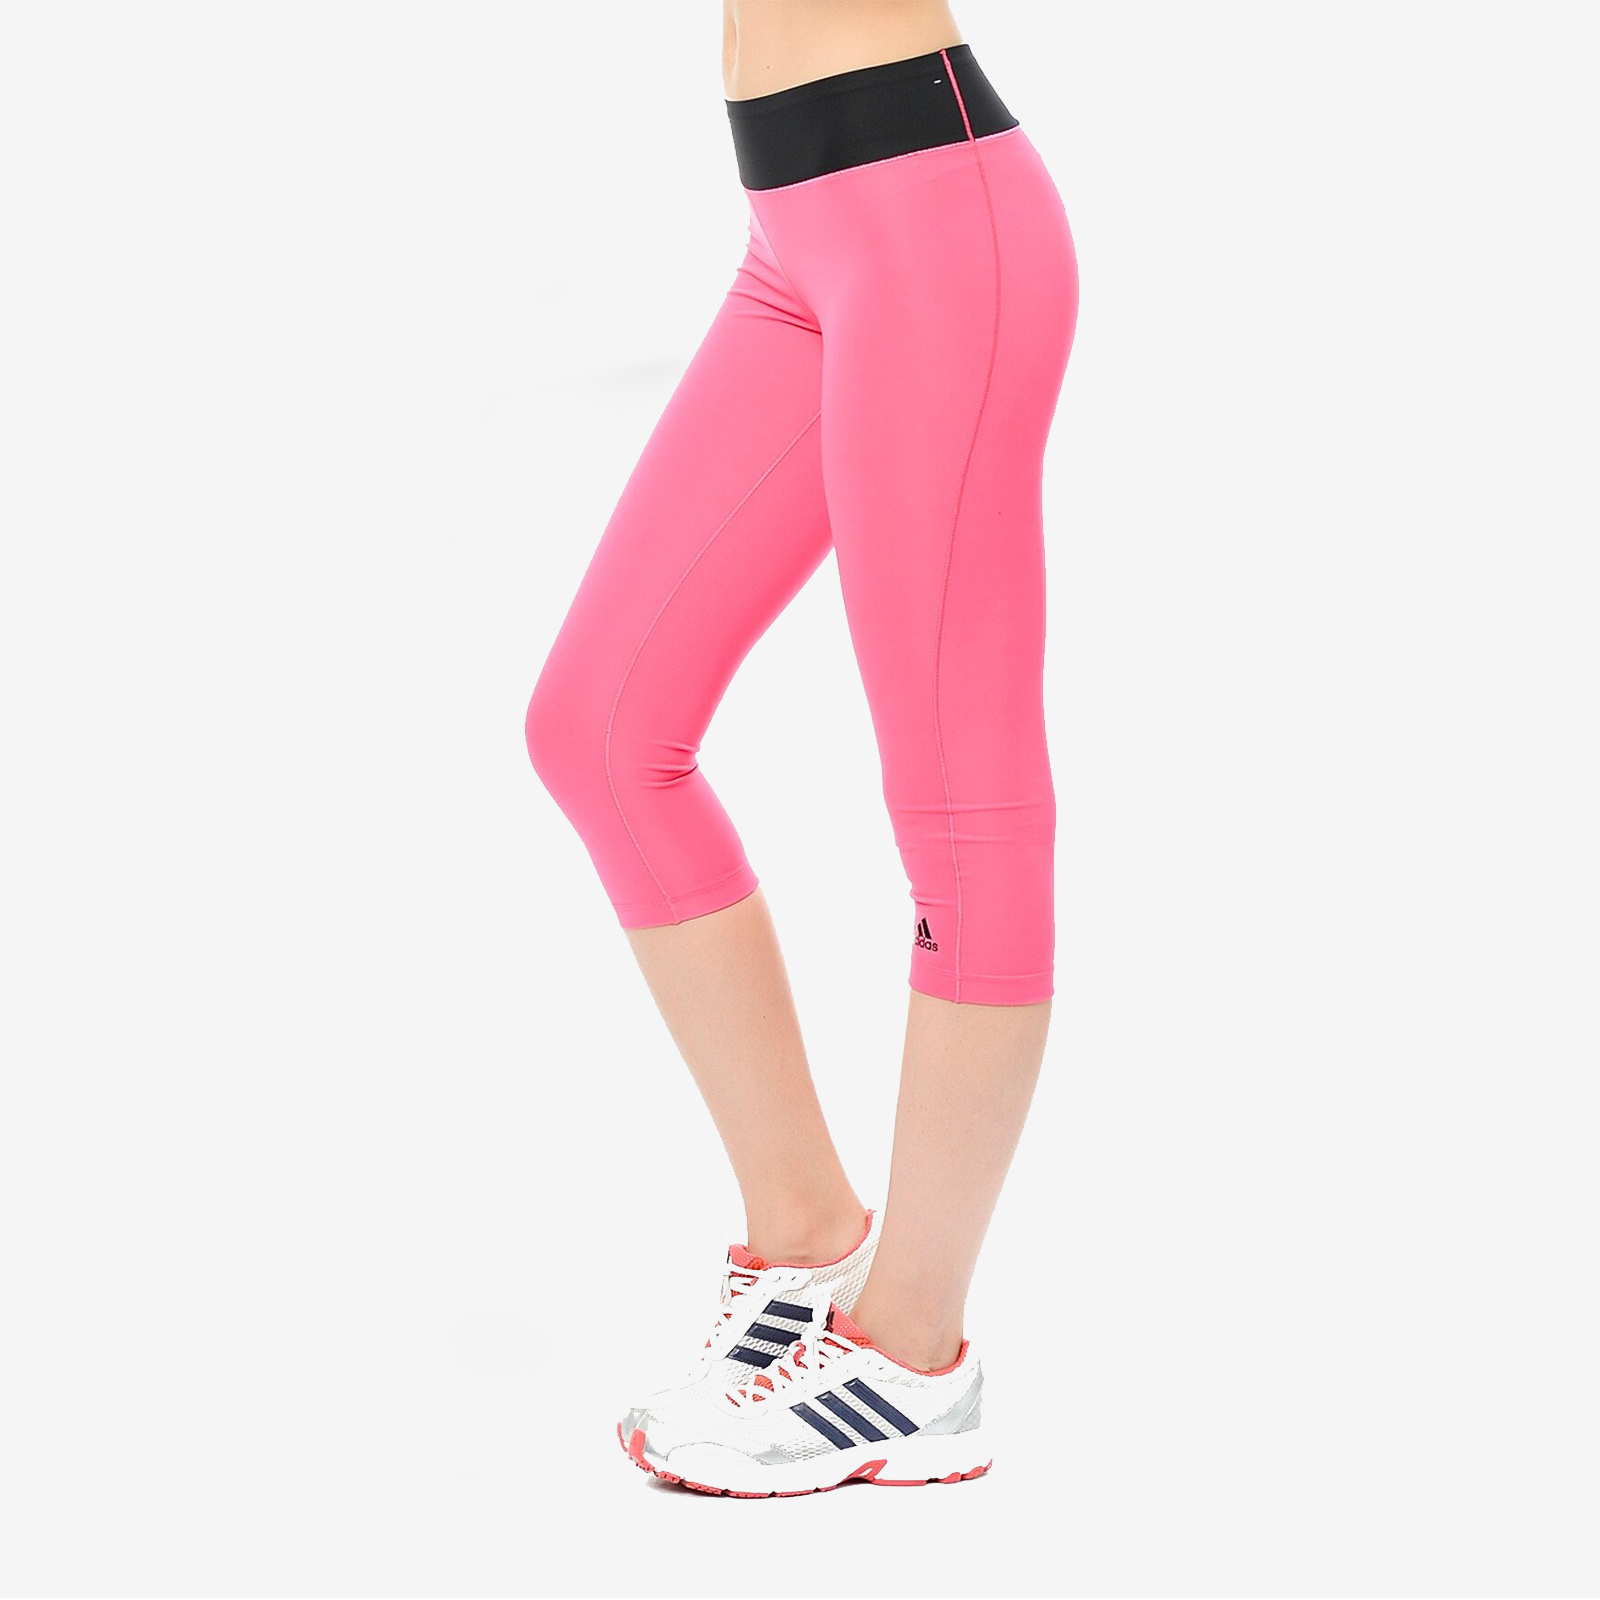 AJ5028-Add-wo-34-tight-pembe-kadin-kapri-637105570551957734.jpg